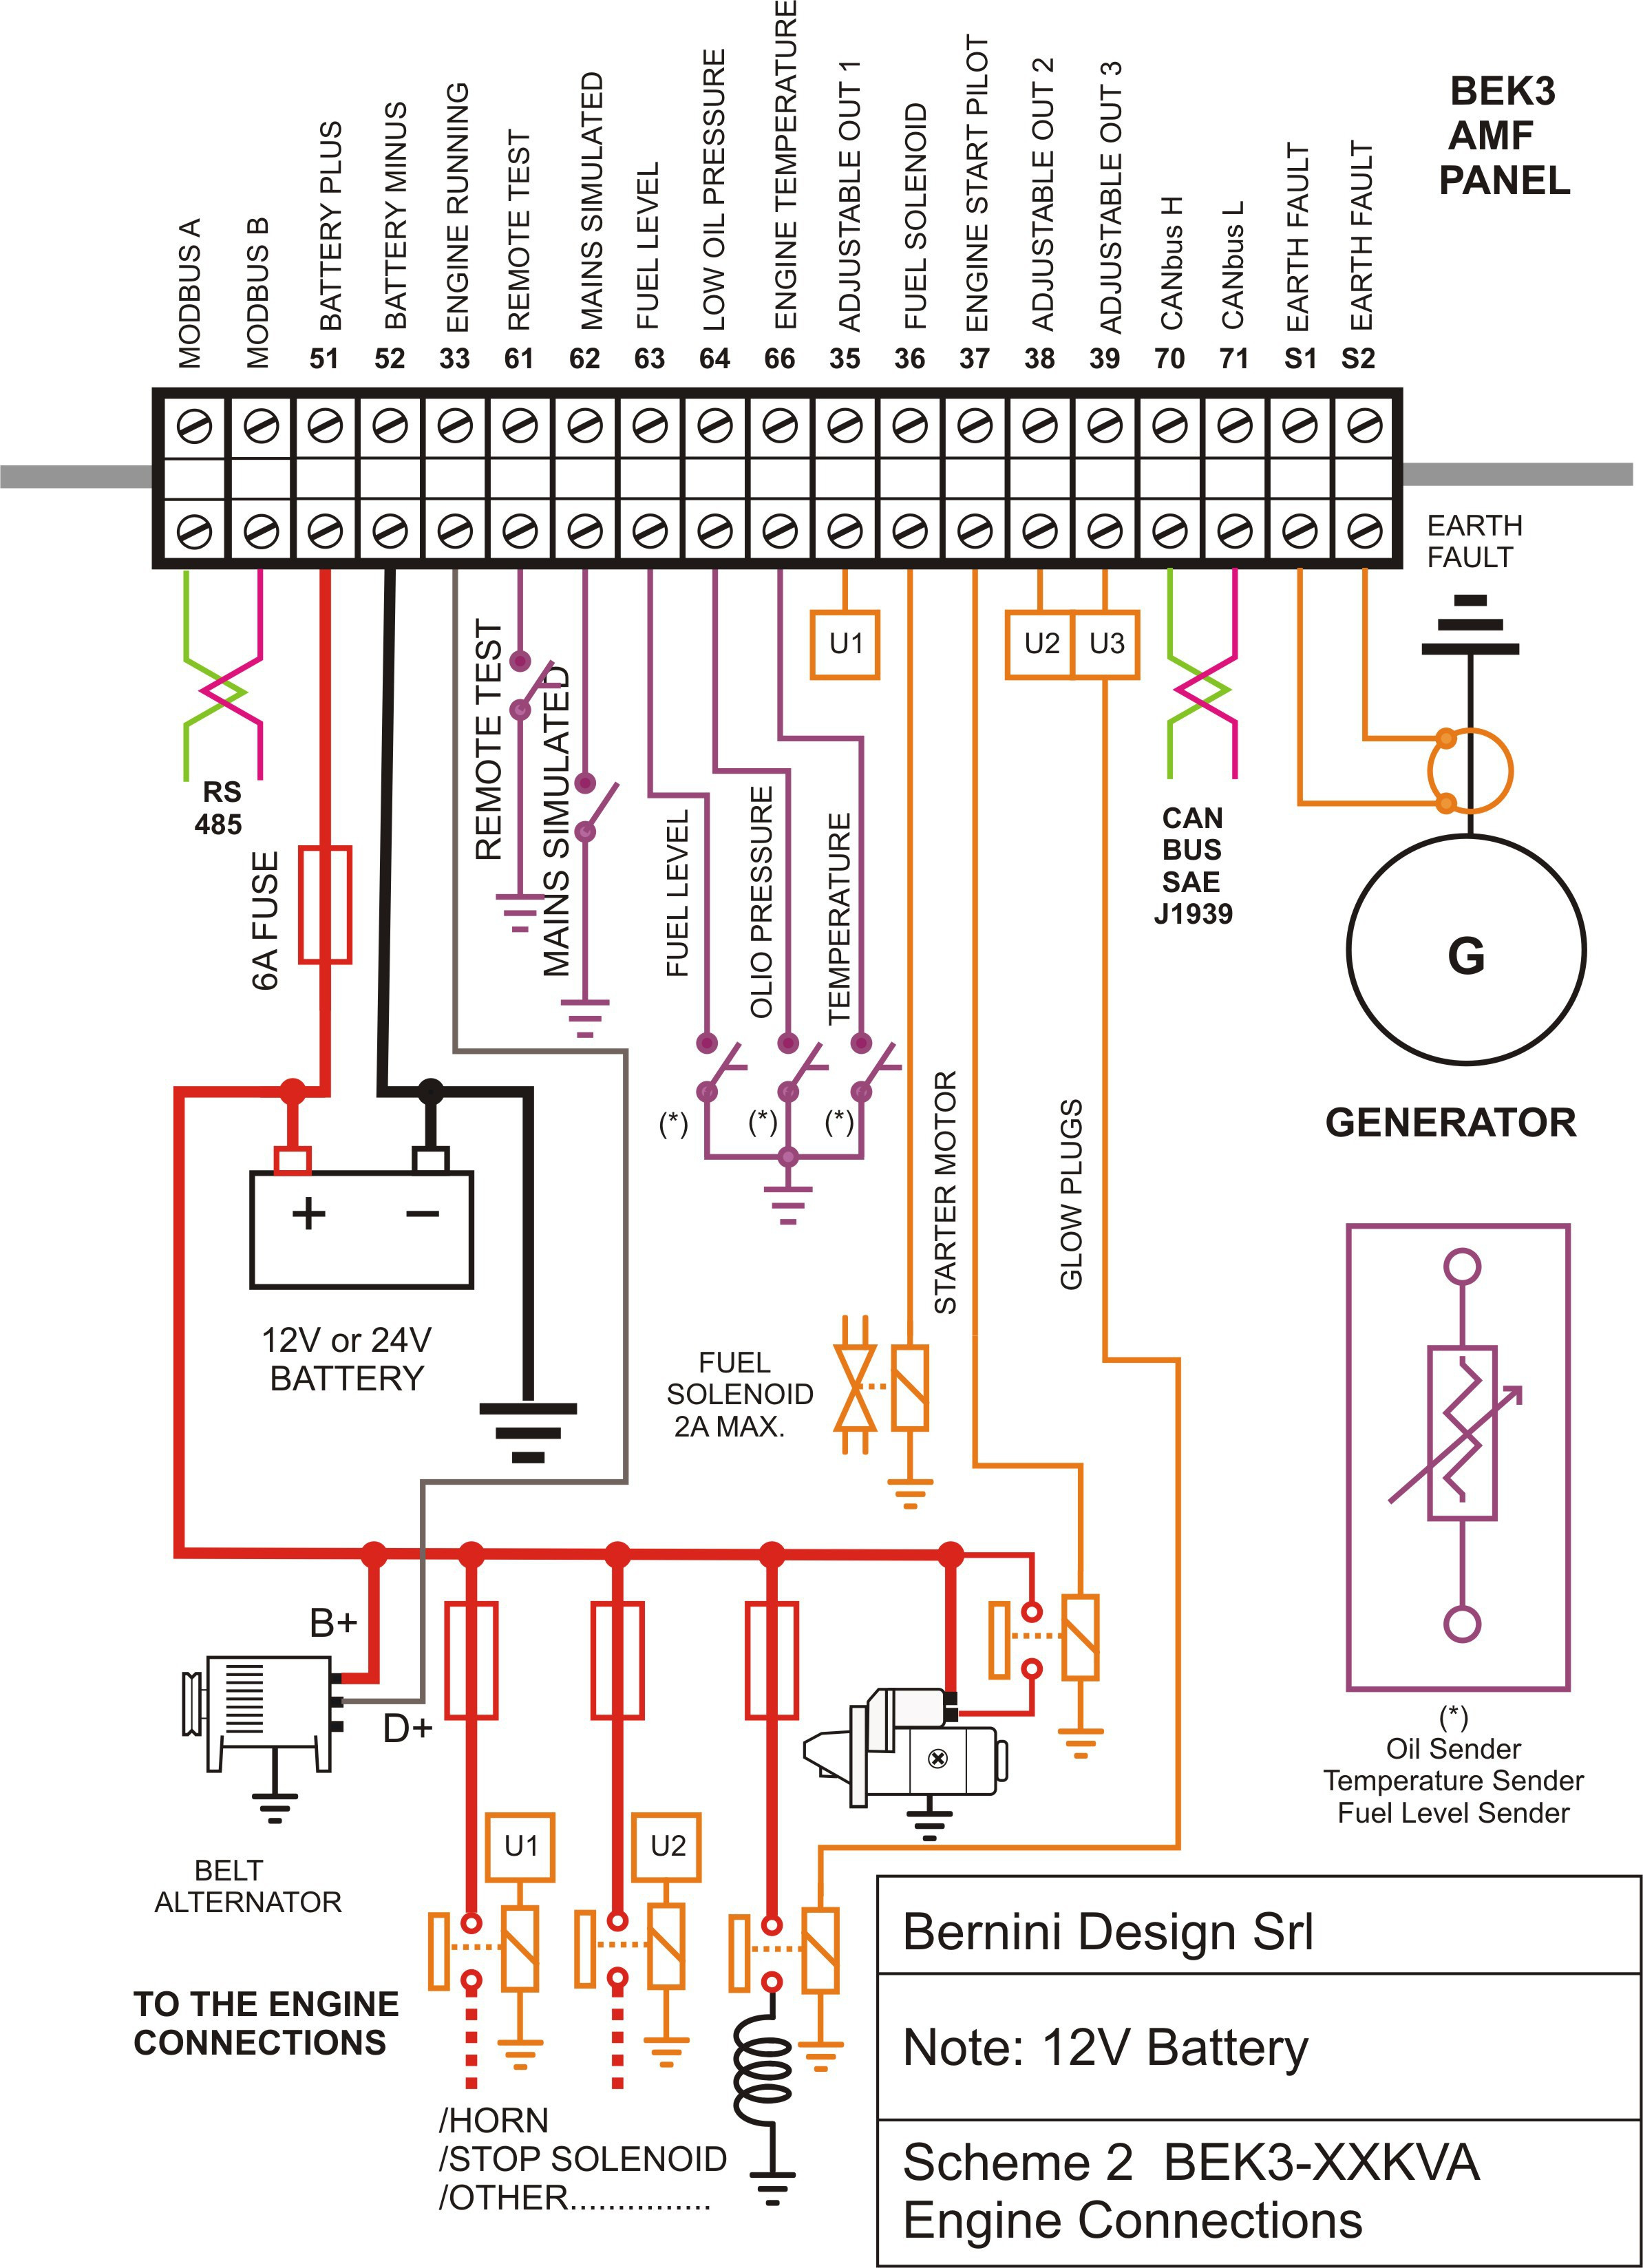 control panel wiring diagram pdf Download-Perkins Generator Wiring Diagram Save Olympian Generator Control Panel Wiring Diagram Inside Sel 14-p